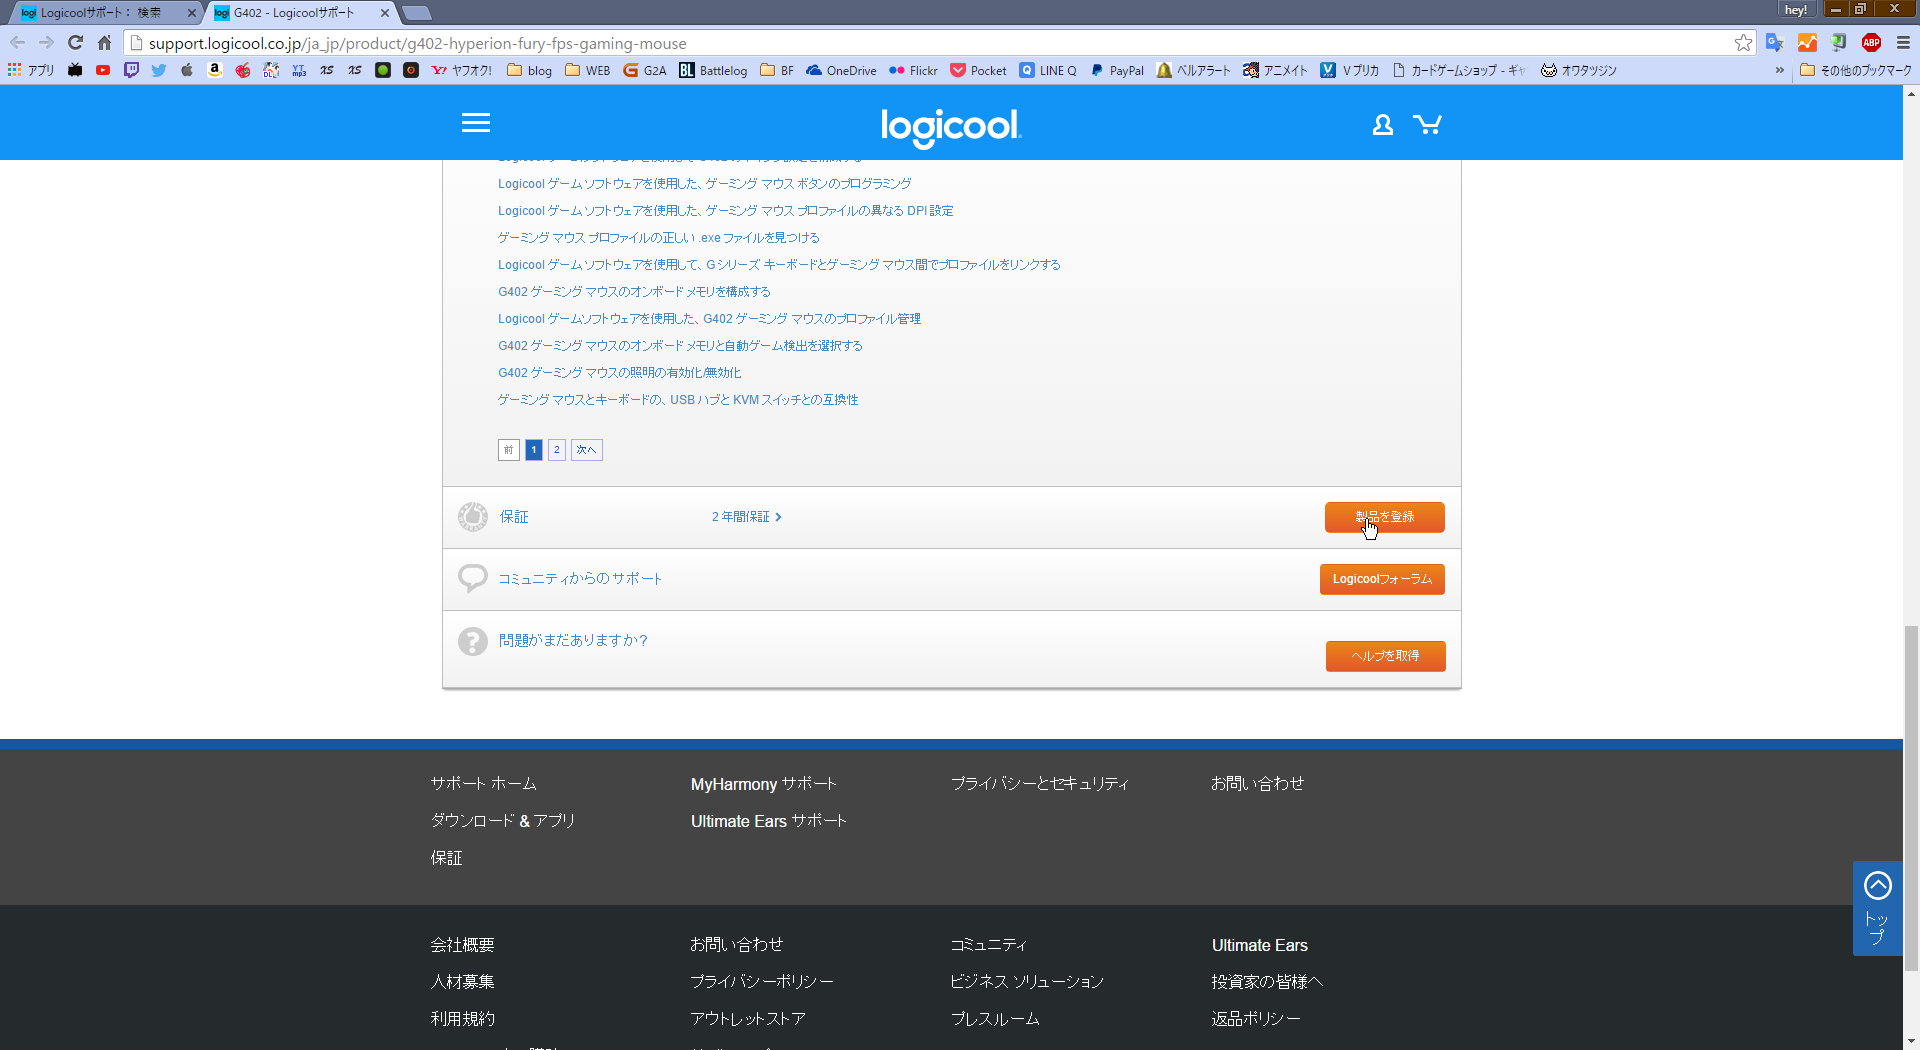 SnapCrab_G402 - Logicoolサポート - Google Chrome_2016-3-26_17-2-18_No-00